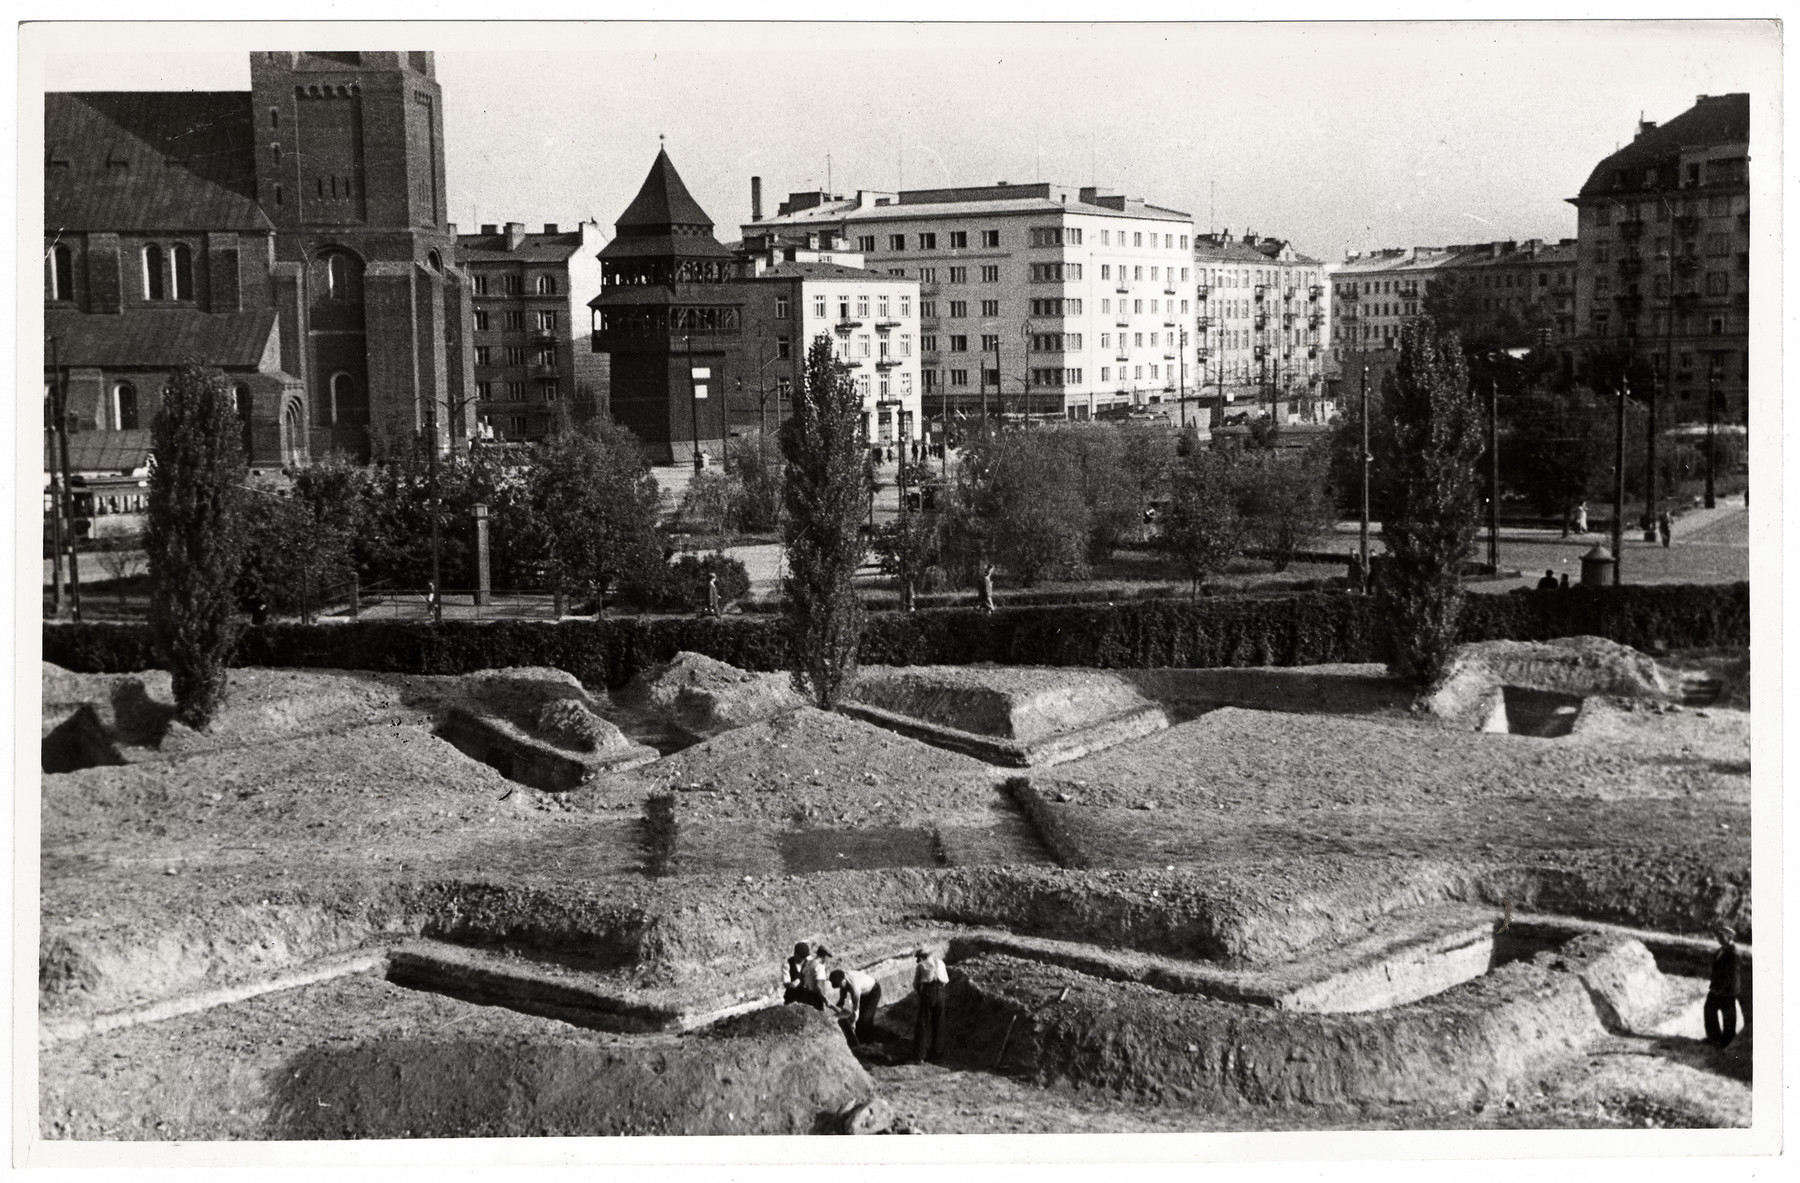 A view of the besieged city of Warsaw and the trenches dug to slow the advance of the German army.